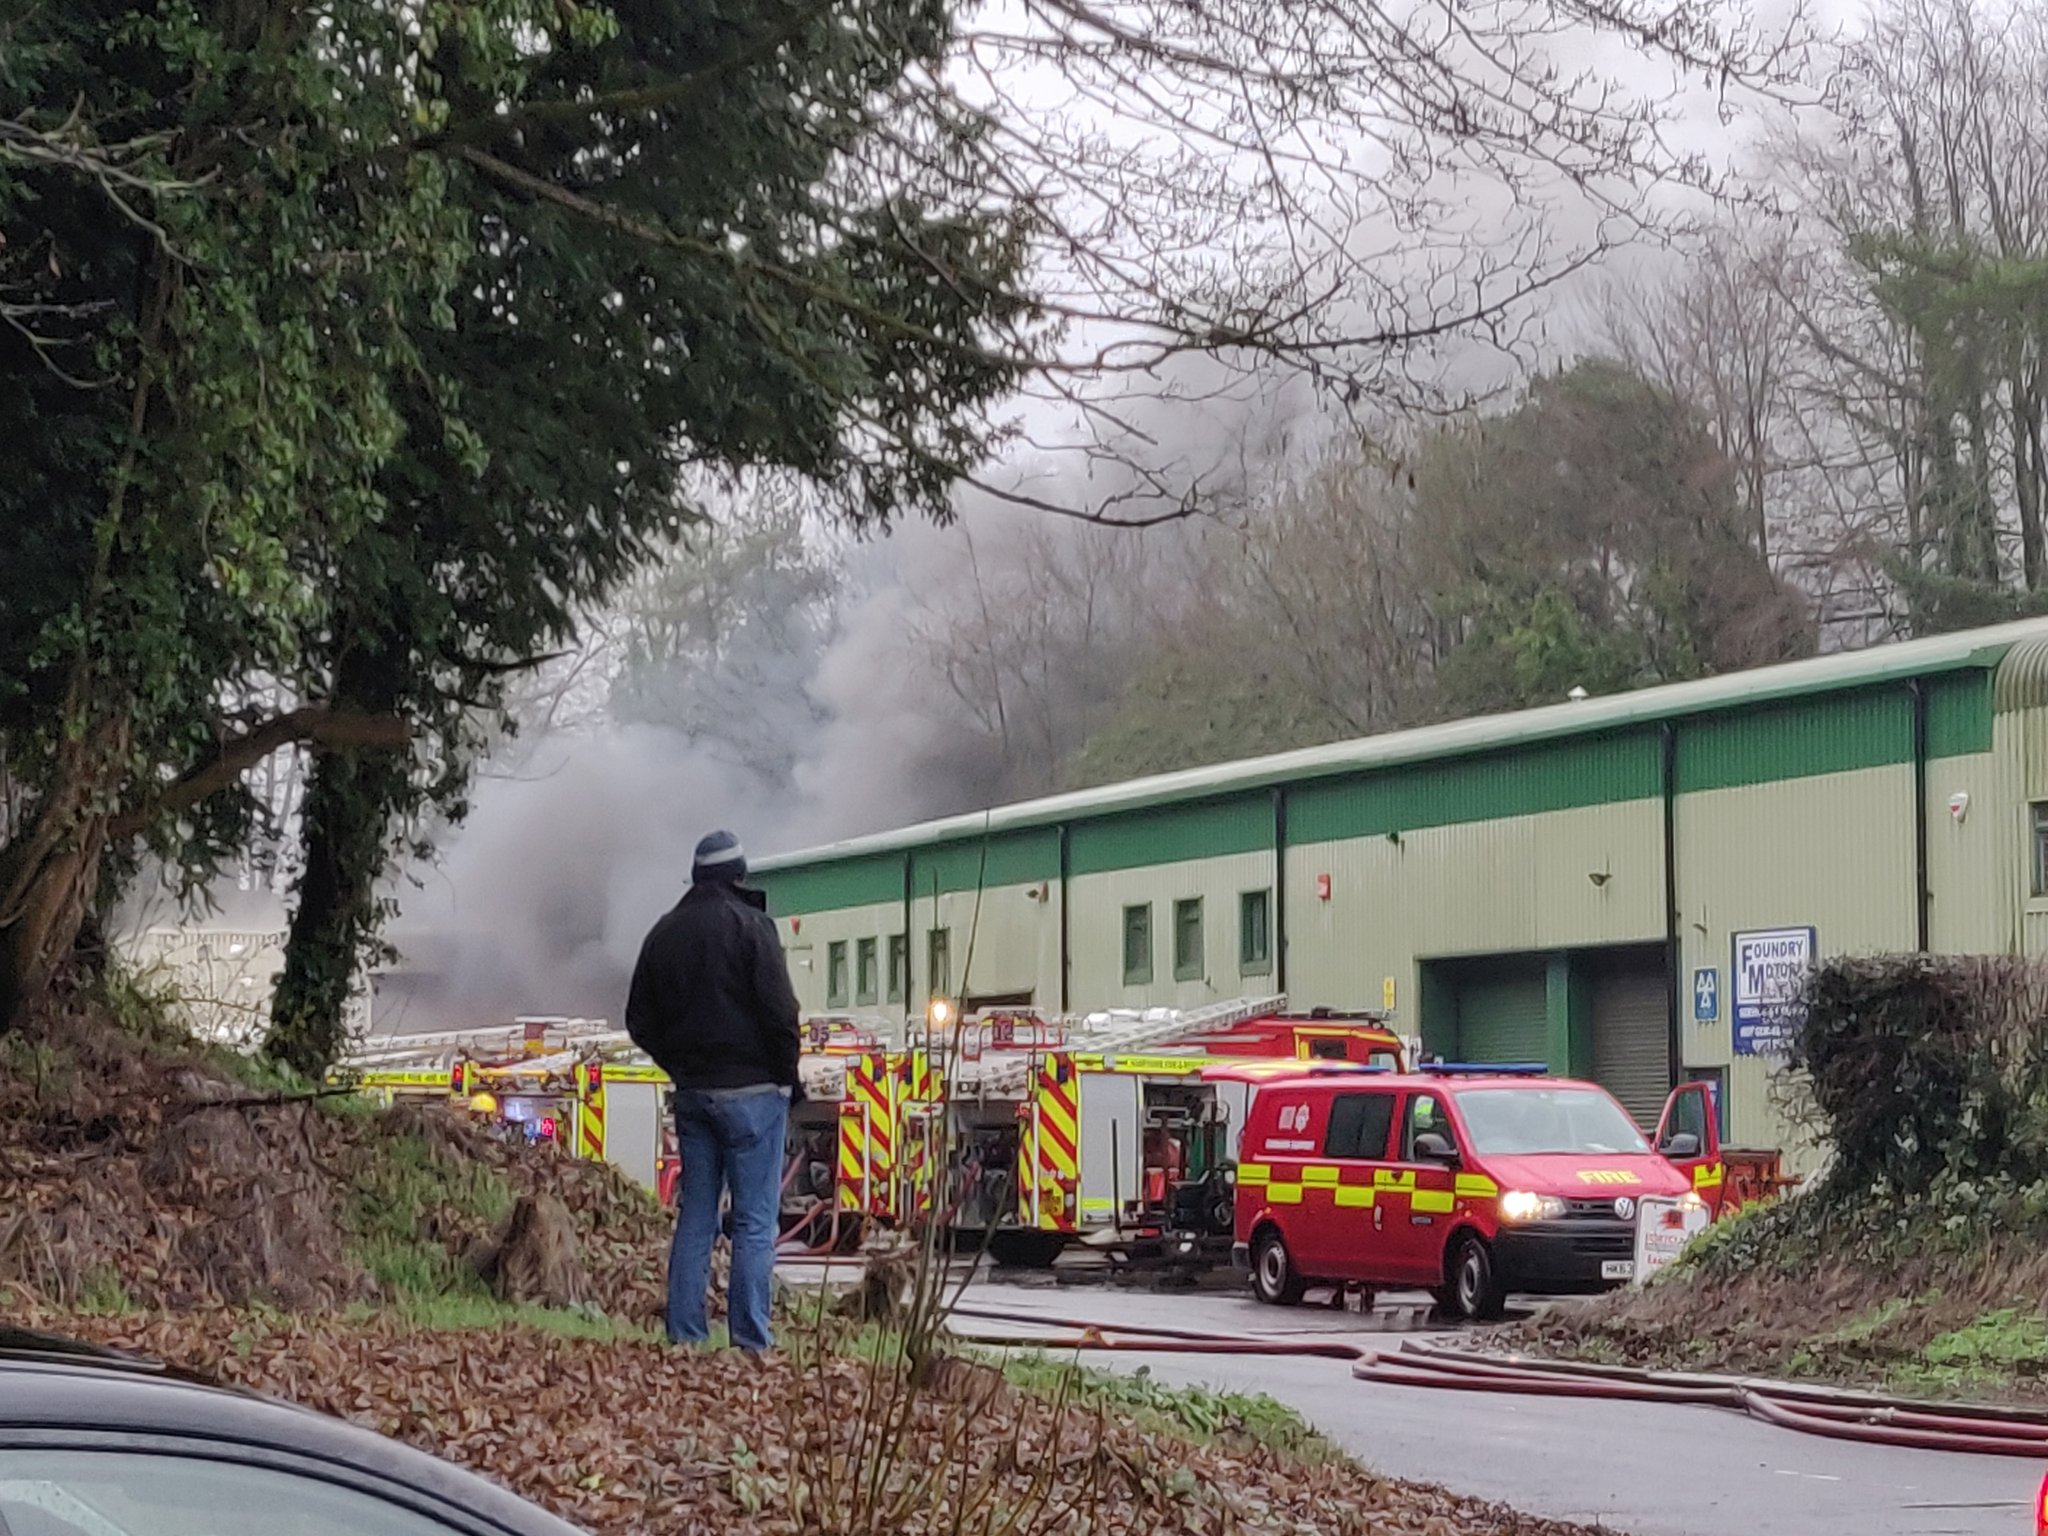 The fire at the industrial units off Wellhouse Lane, near Winchester. Photo: Will Reid/Twitter